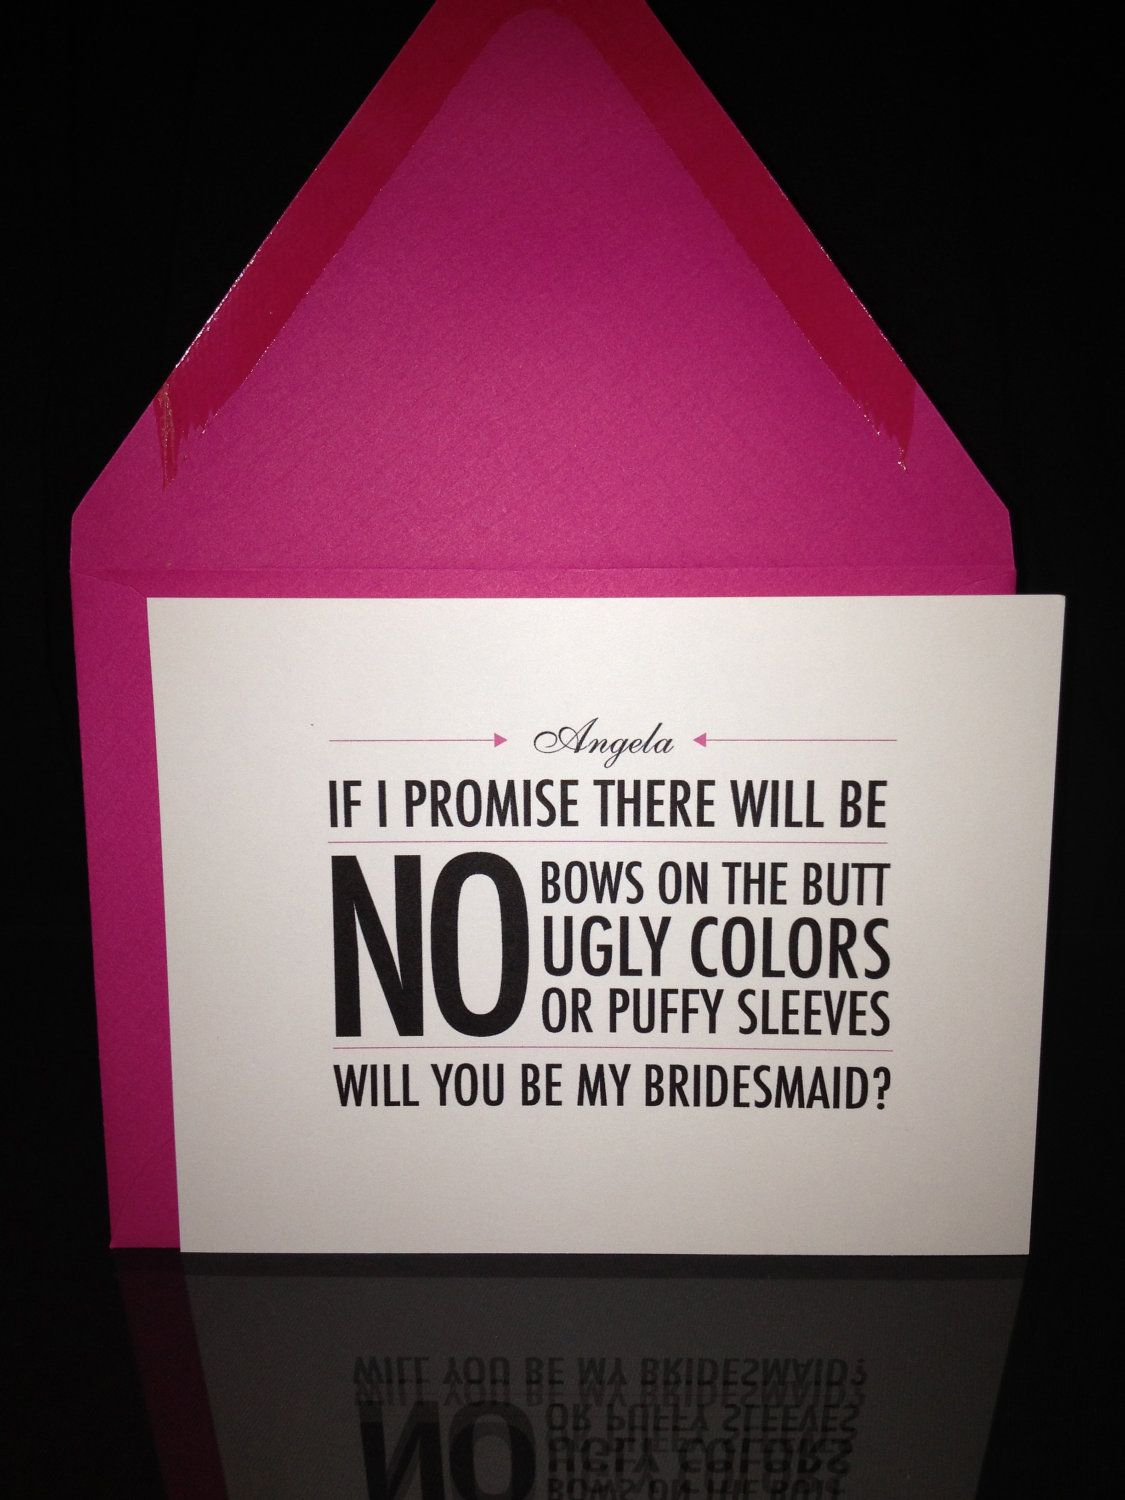 Will You Be My Bridesmaid Creative Ways To Ask Gift Ideas On Pintere